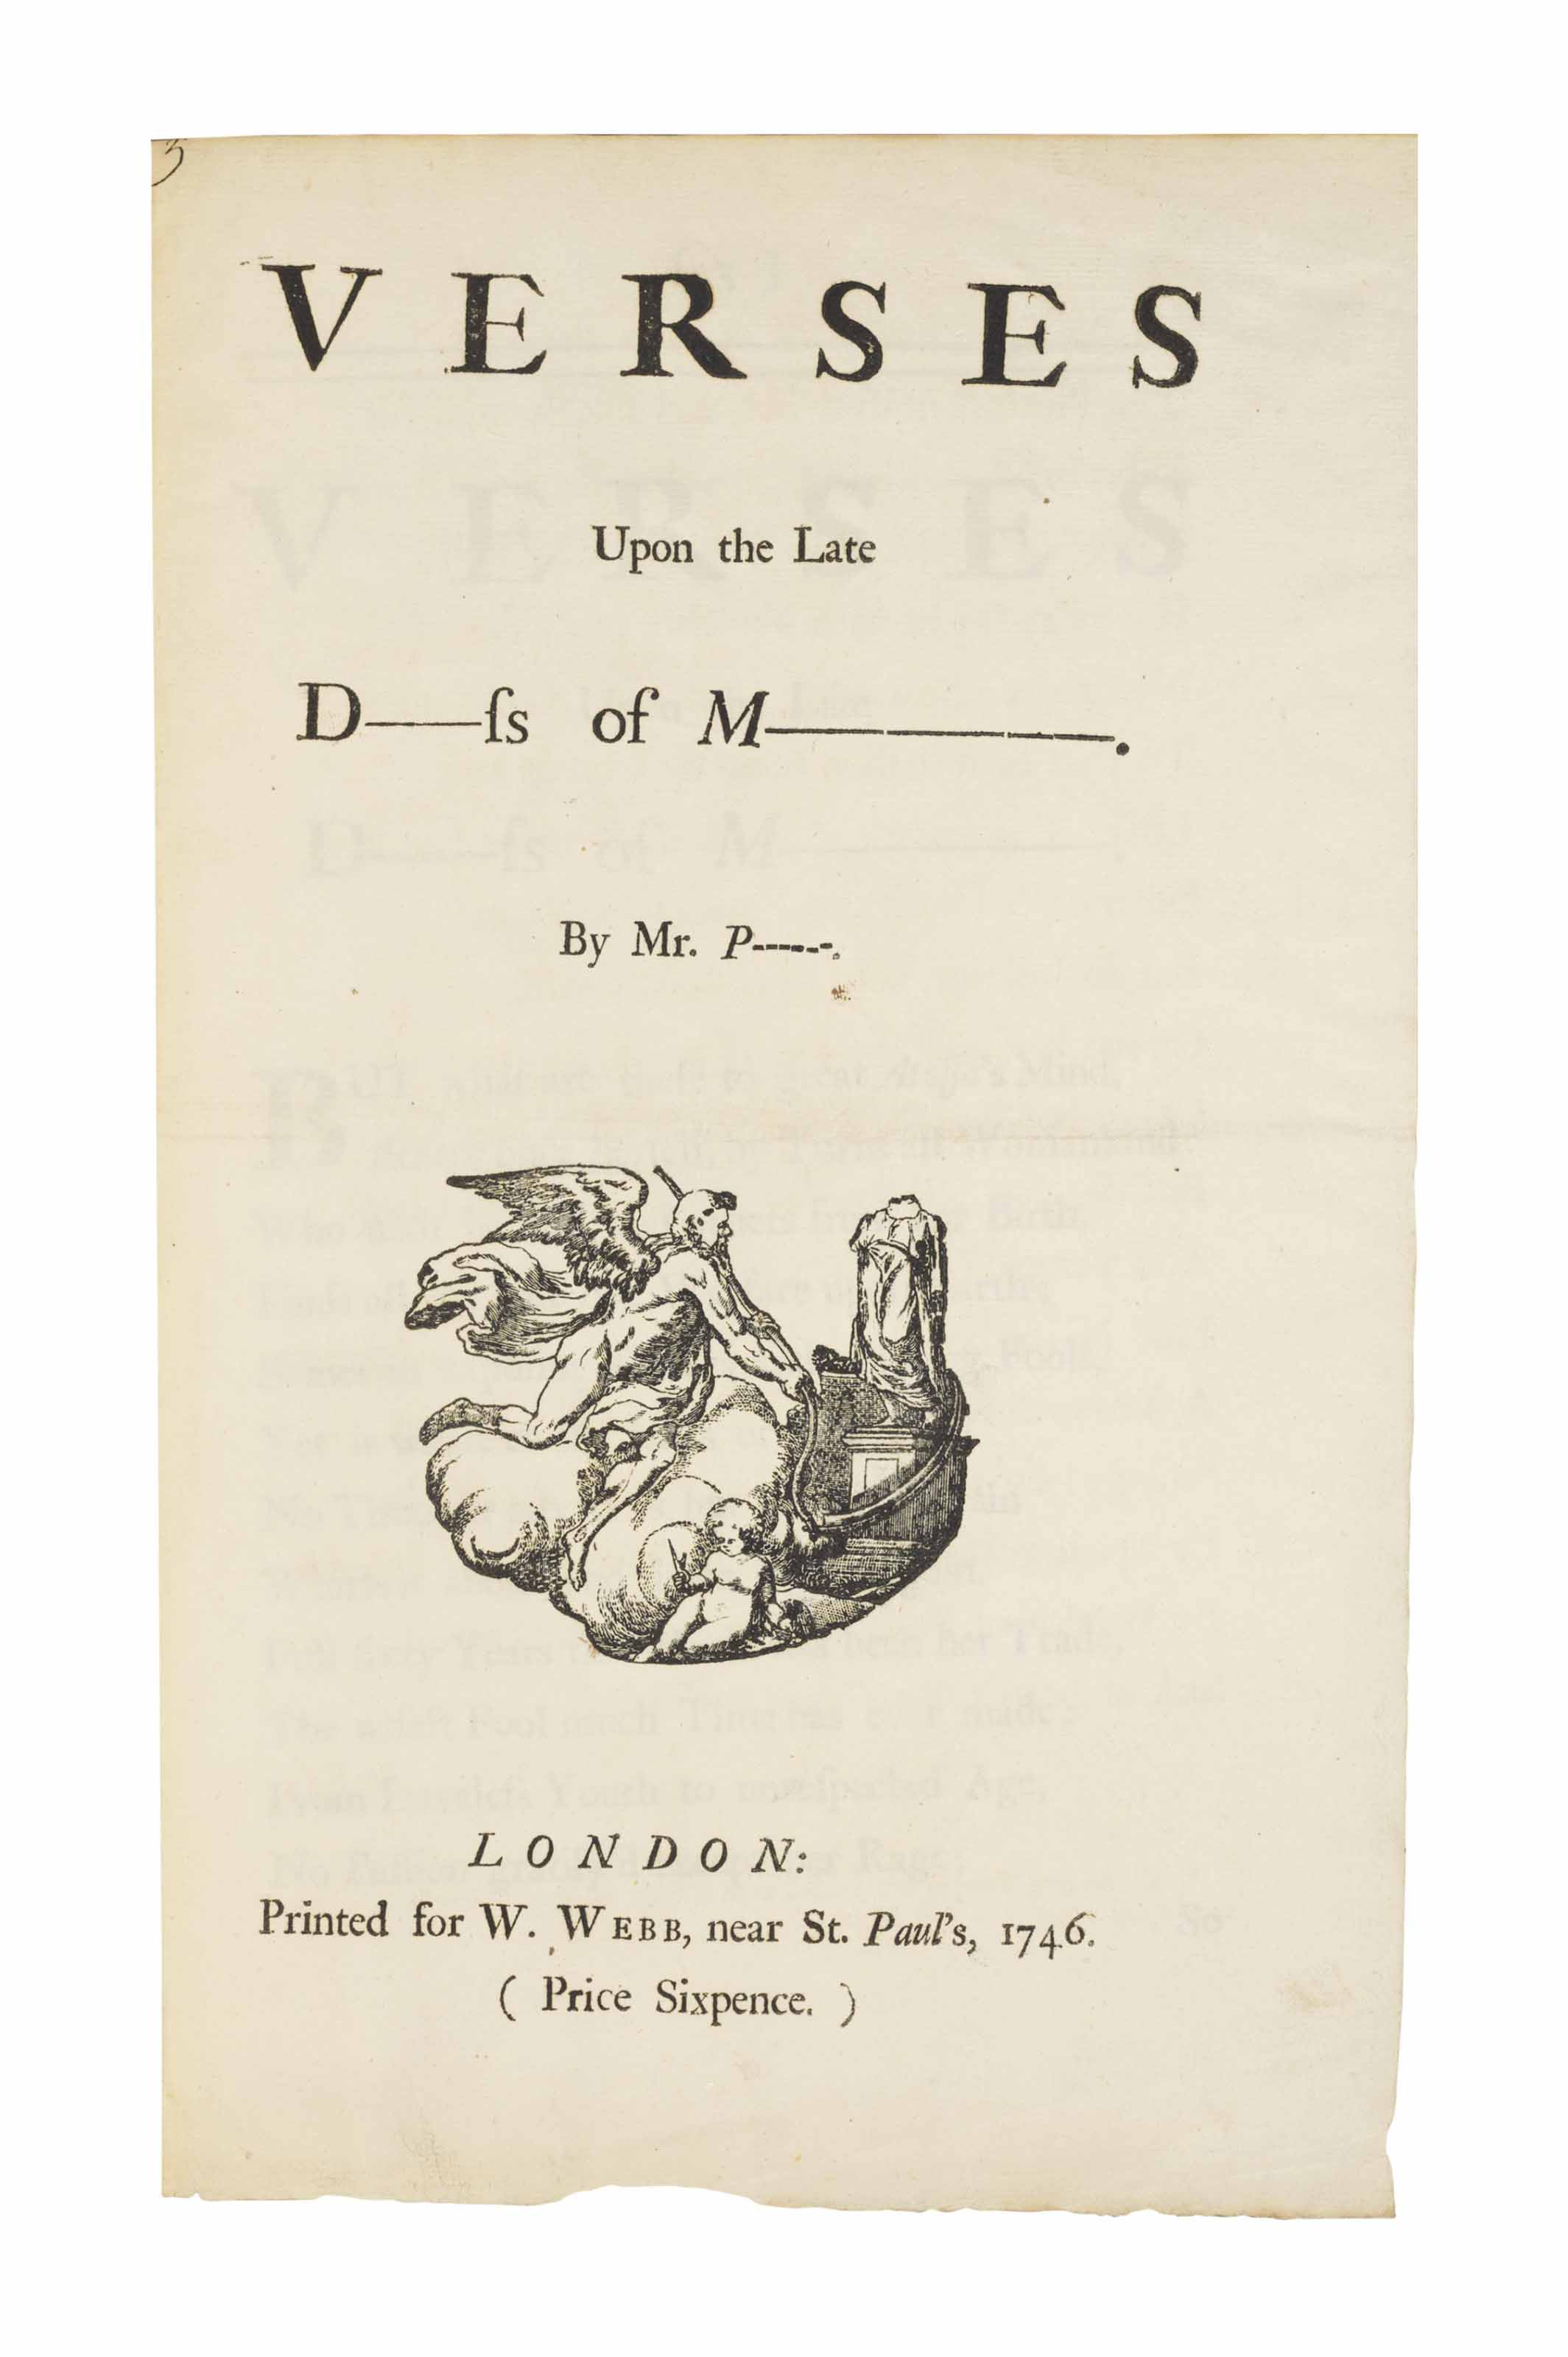 POPE, Alexander. Verses upon the late D-----ss of M-----. By Mr. P. London: W. Webb, 1746.